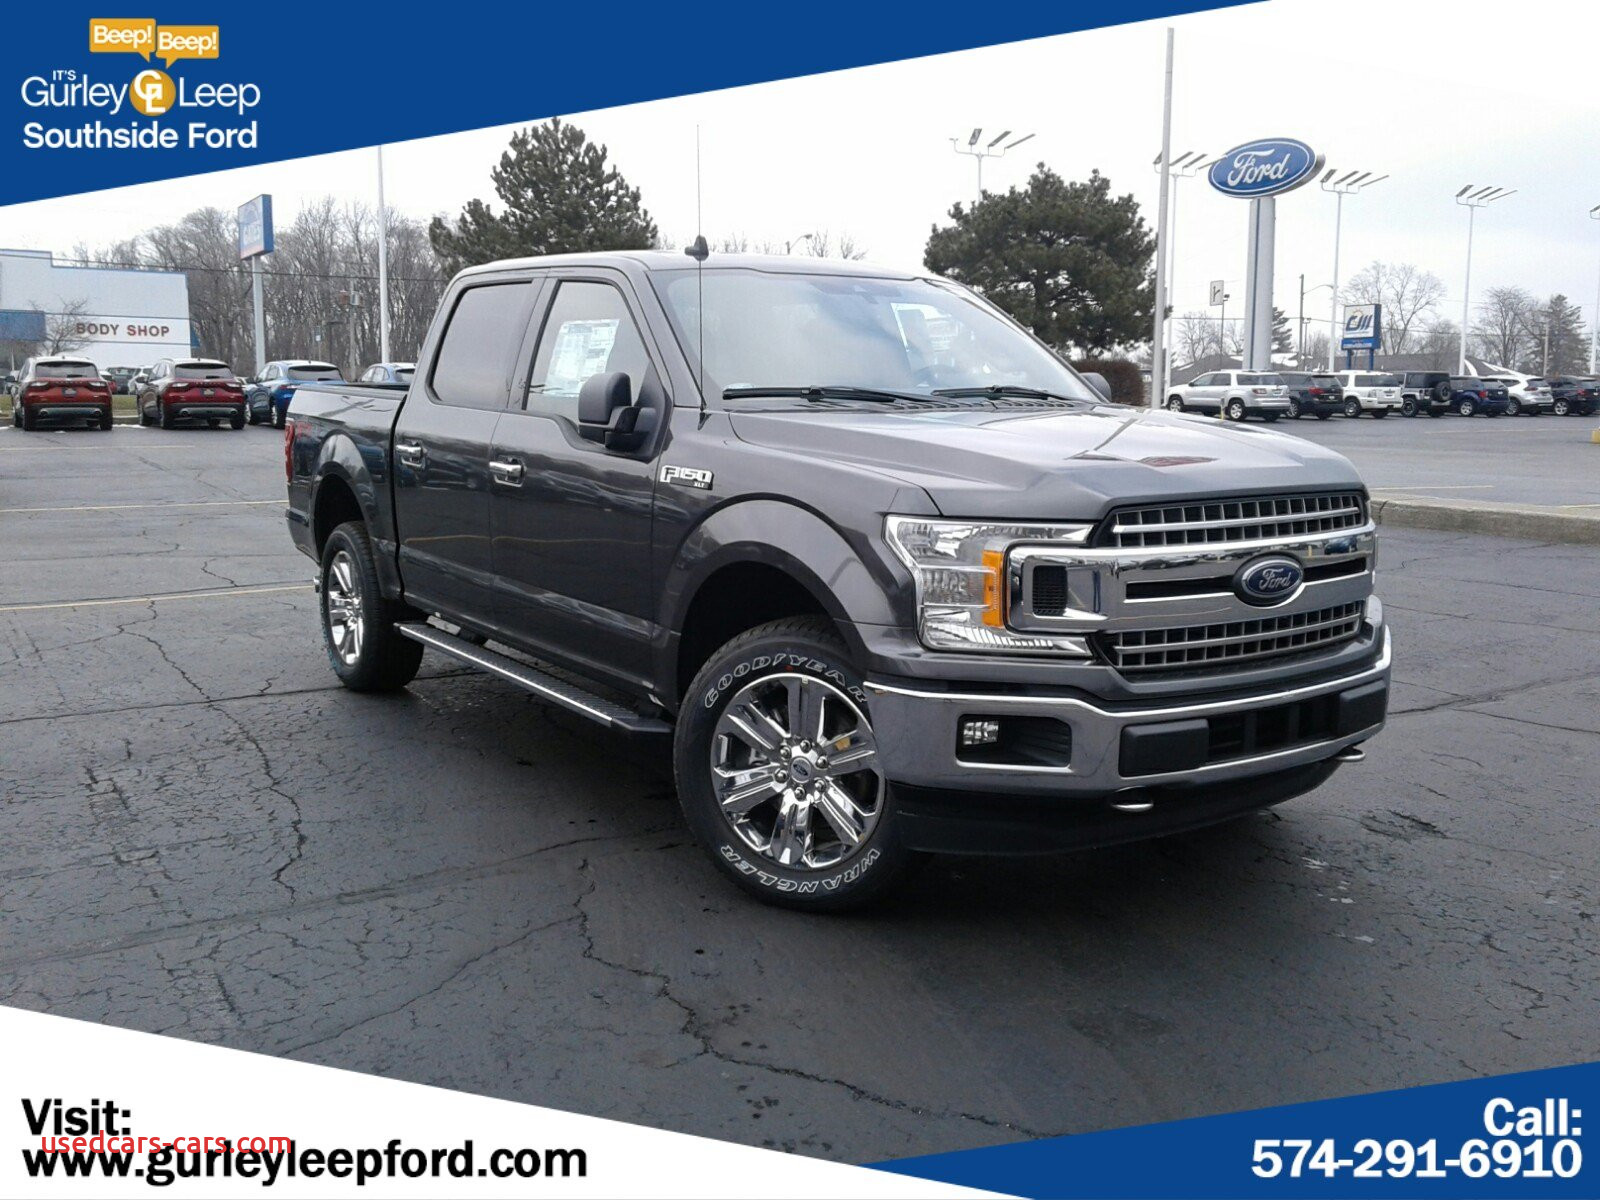 2020 ford 4x4 Truck Awesome New 2020 ford F 150 Xlt with Navigation & 4wd